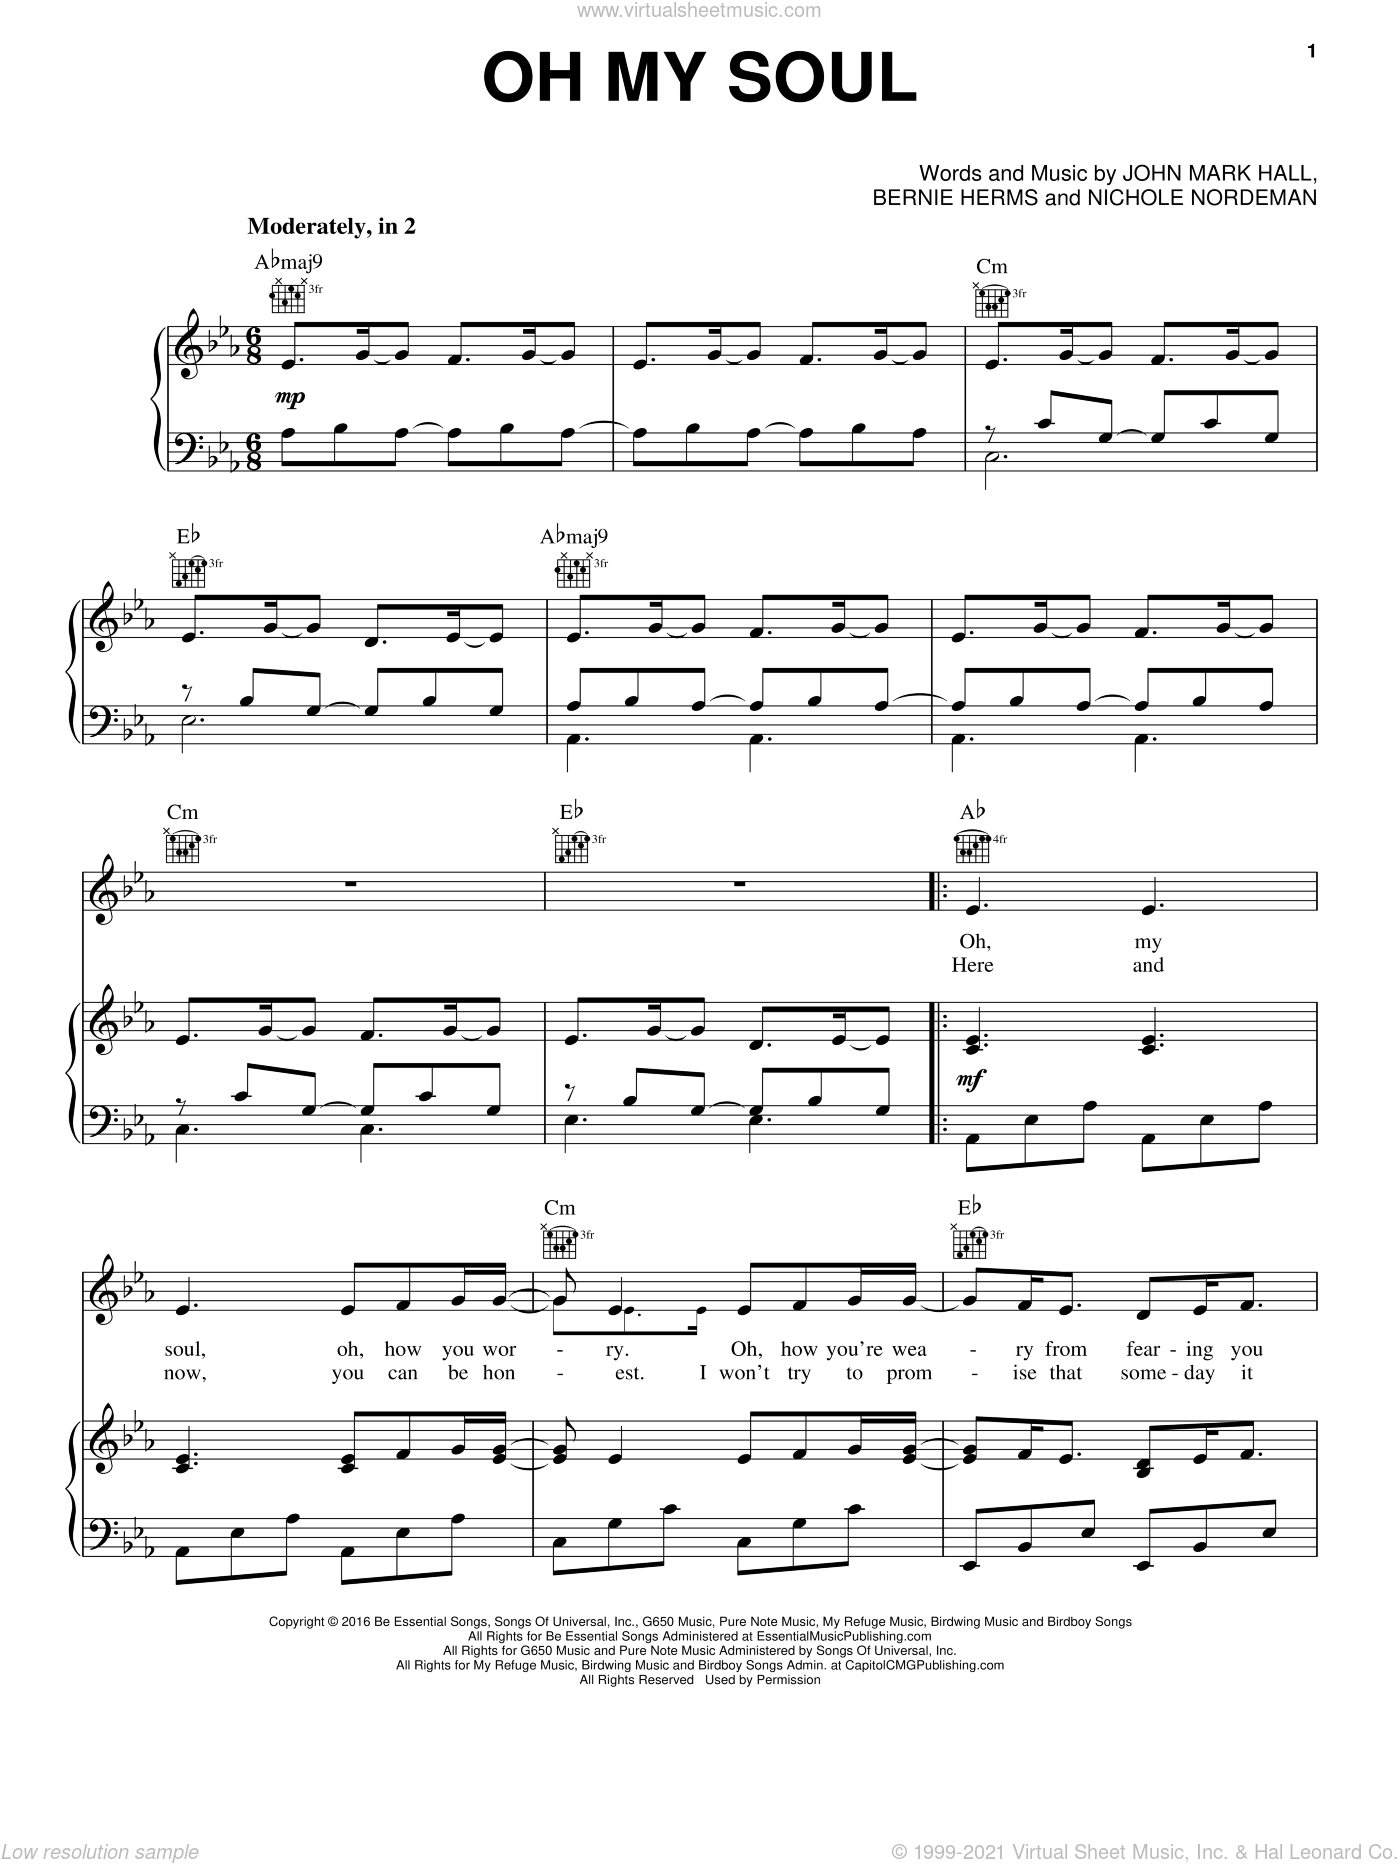 Oh My Soul sheet music for voice, piano or guitar by Casting Crowns, Bernie Herms and John Mark Hall, intermediate skill level